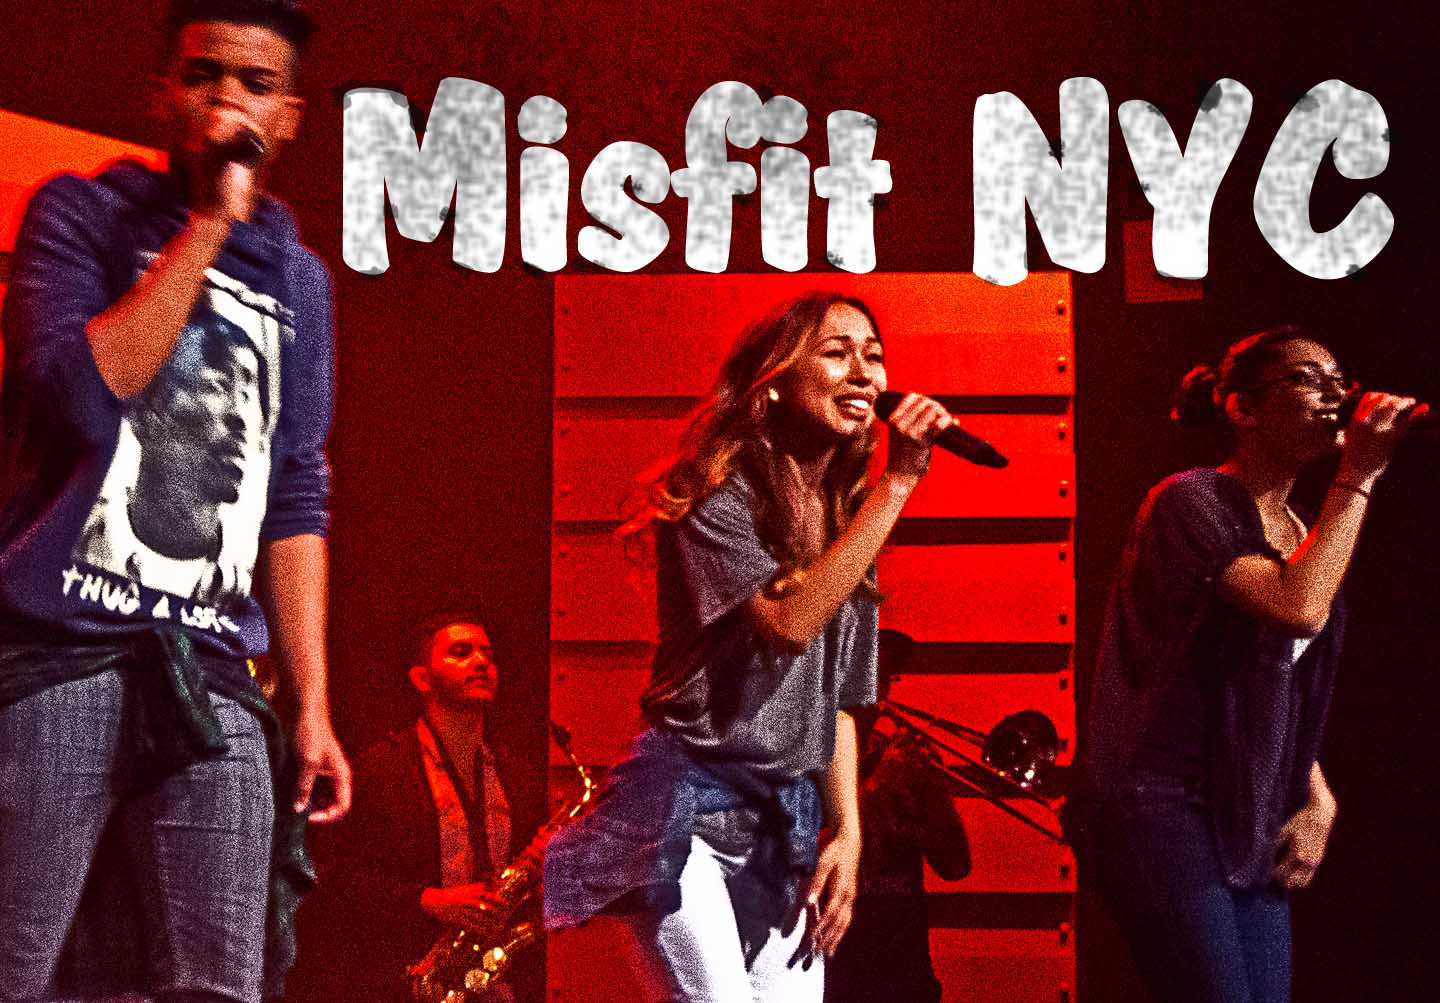 Three singers on-stage at the Hip-Hop worship service of Misfit NYC